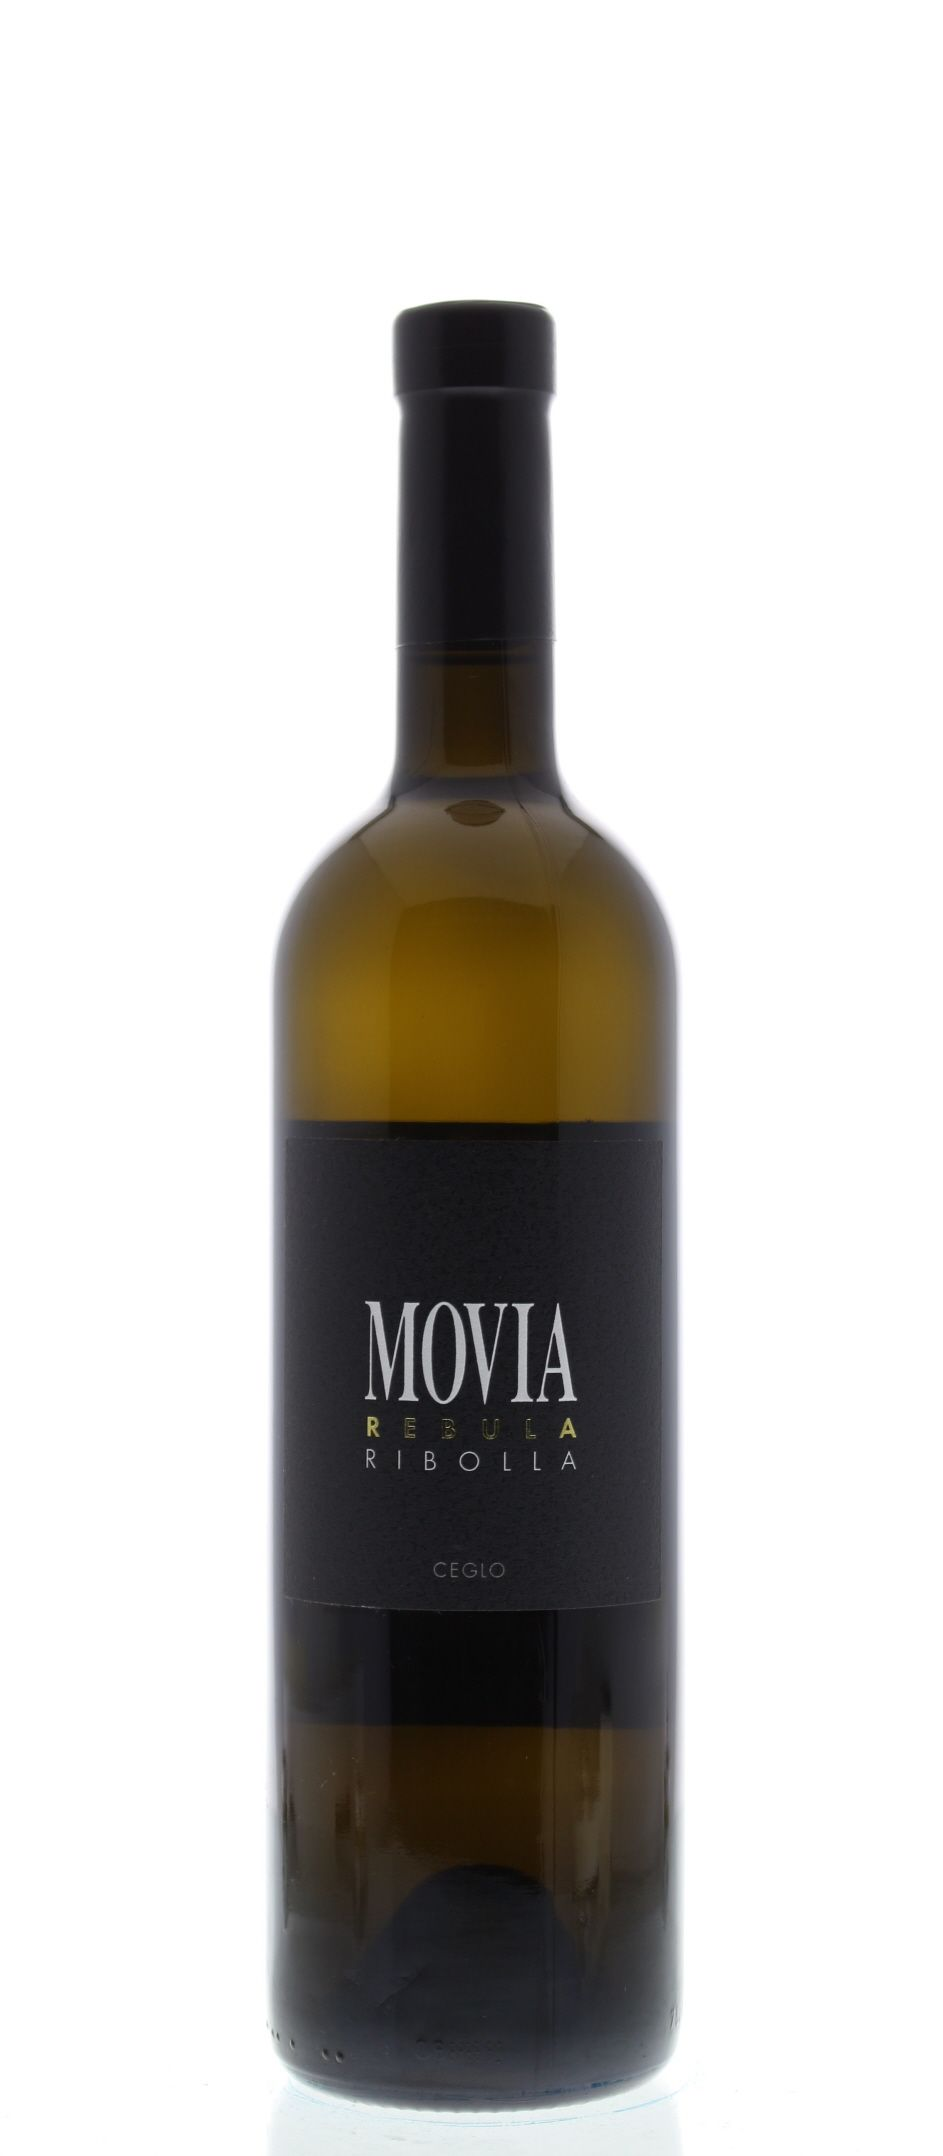 Movia Ribolla 2011 Front Bottle Shot